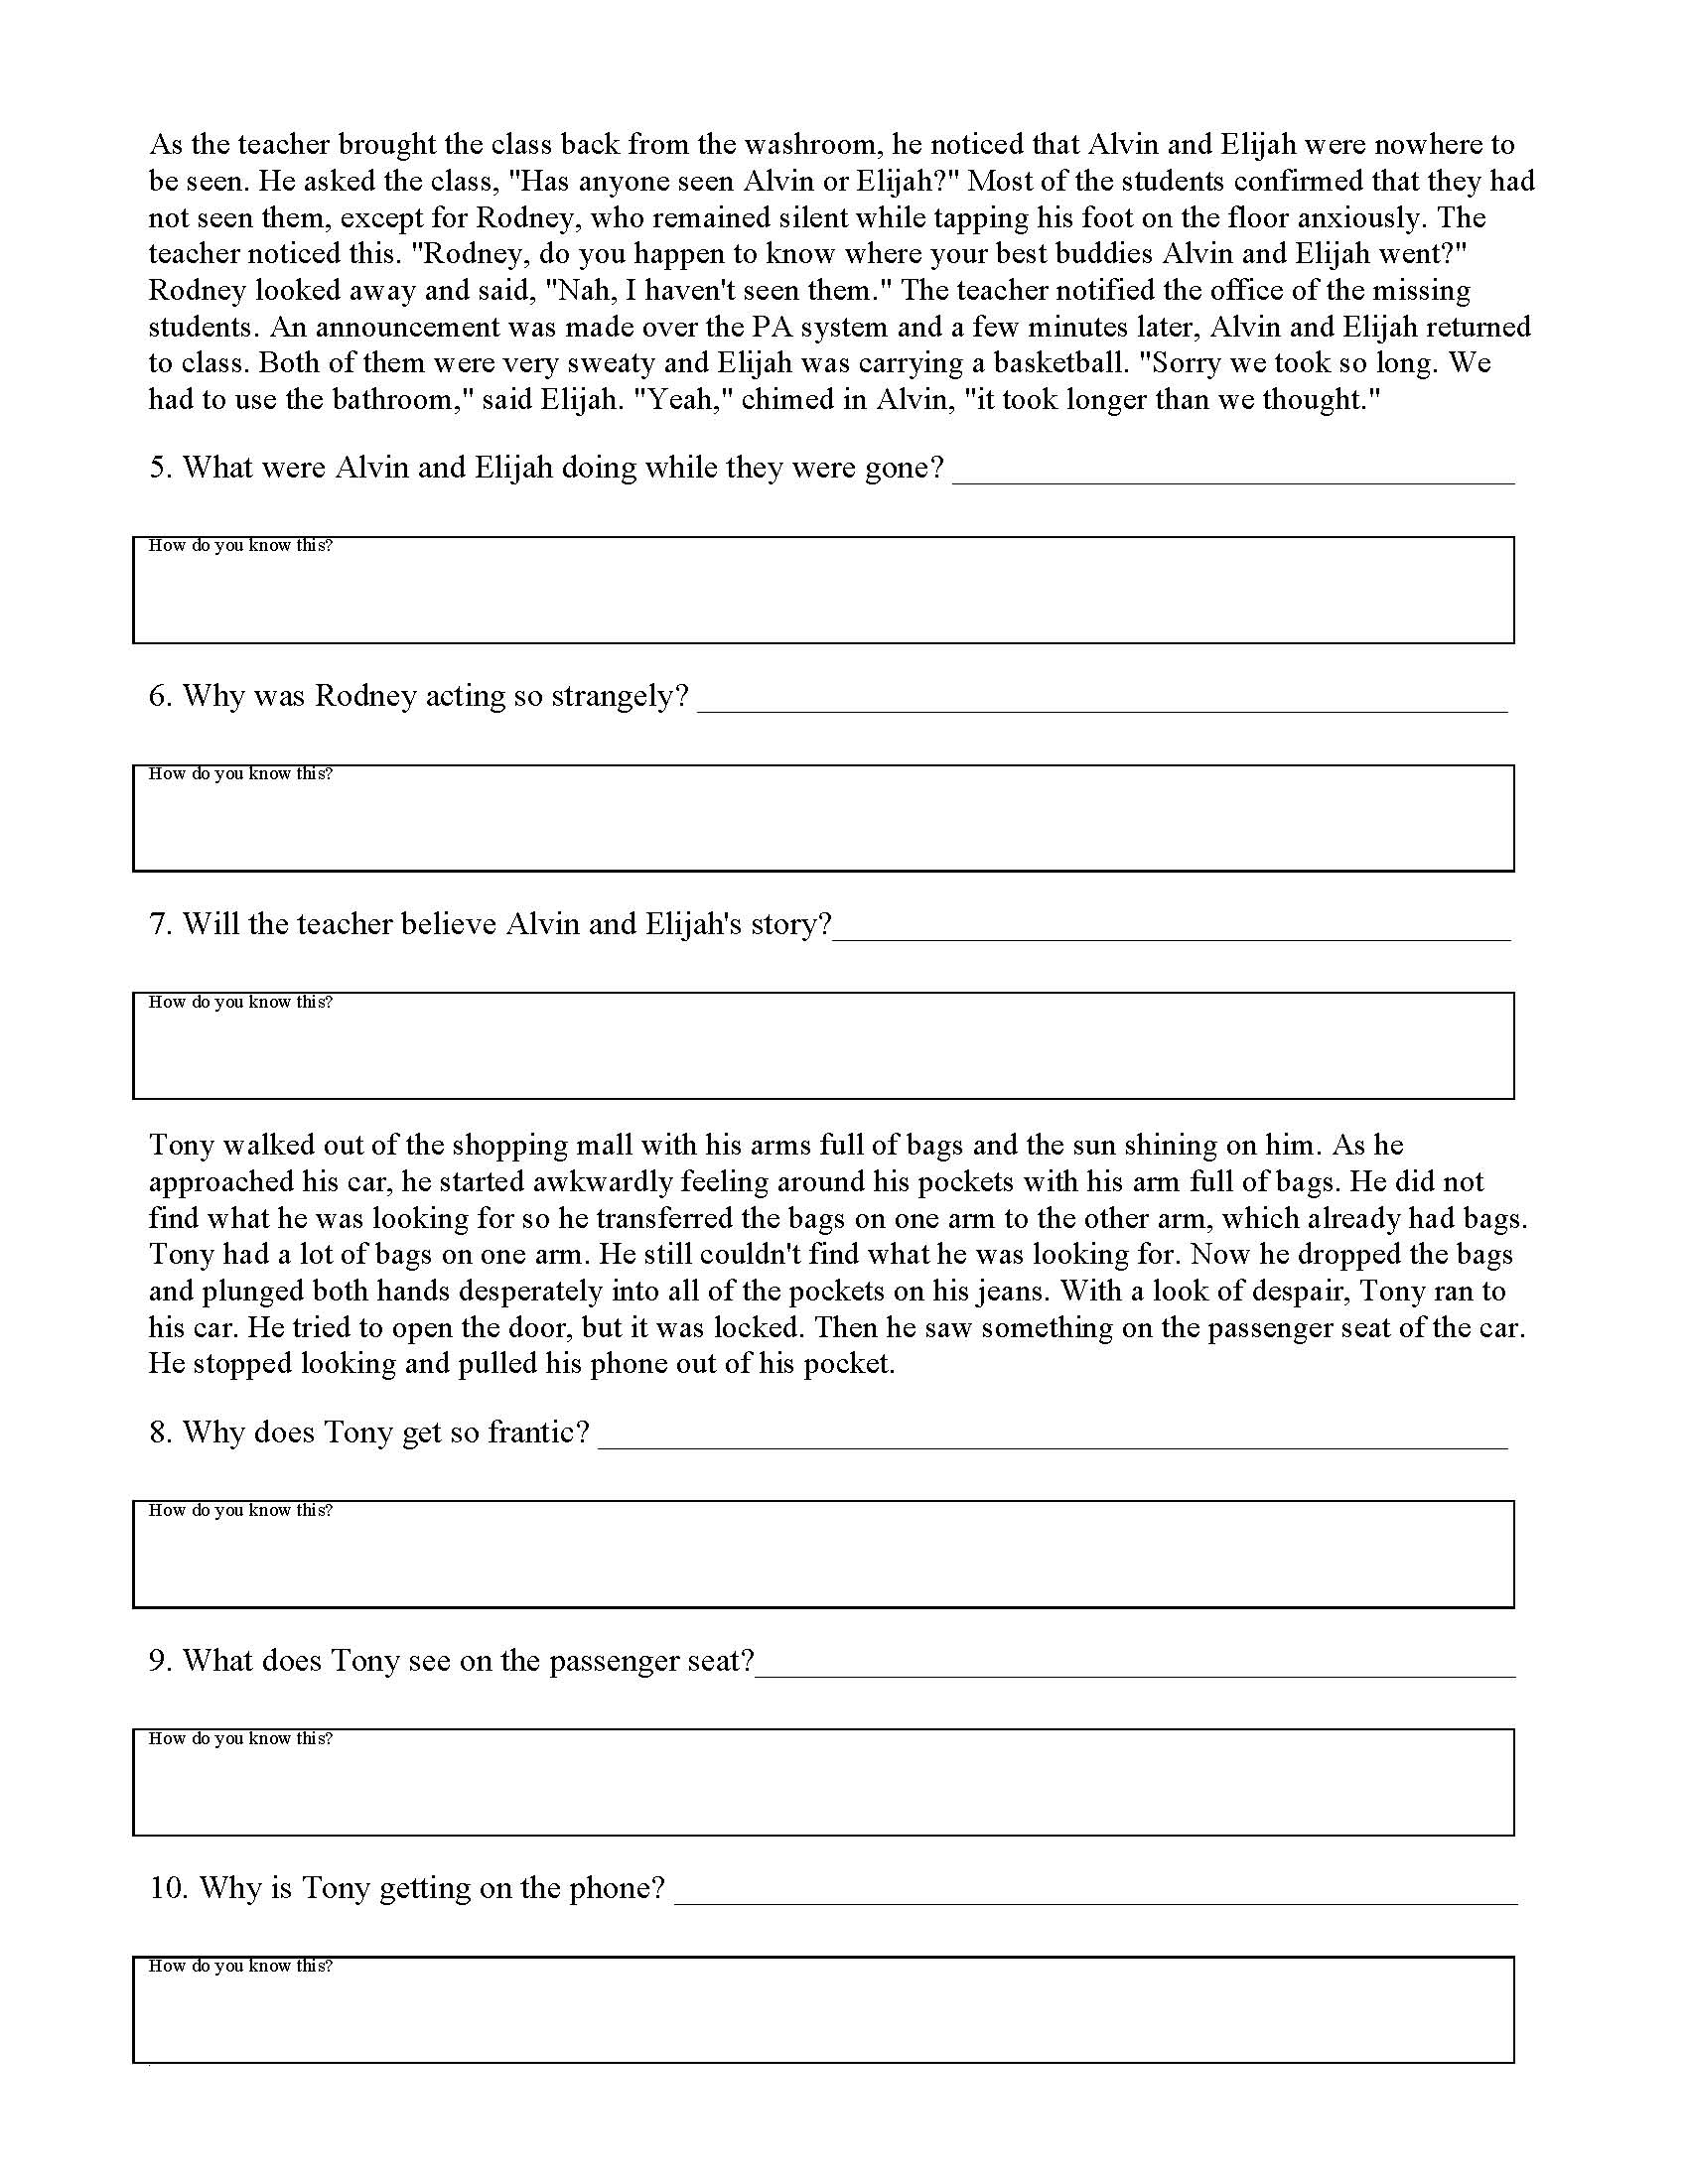 Inferences Worksheet 3 | Preview